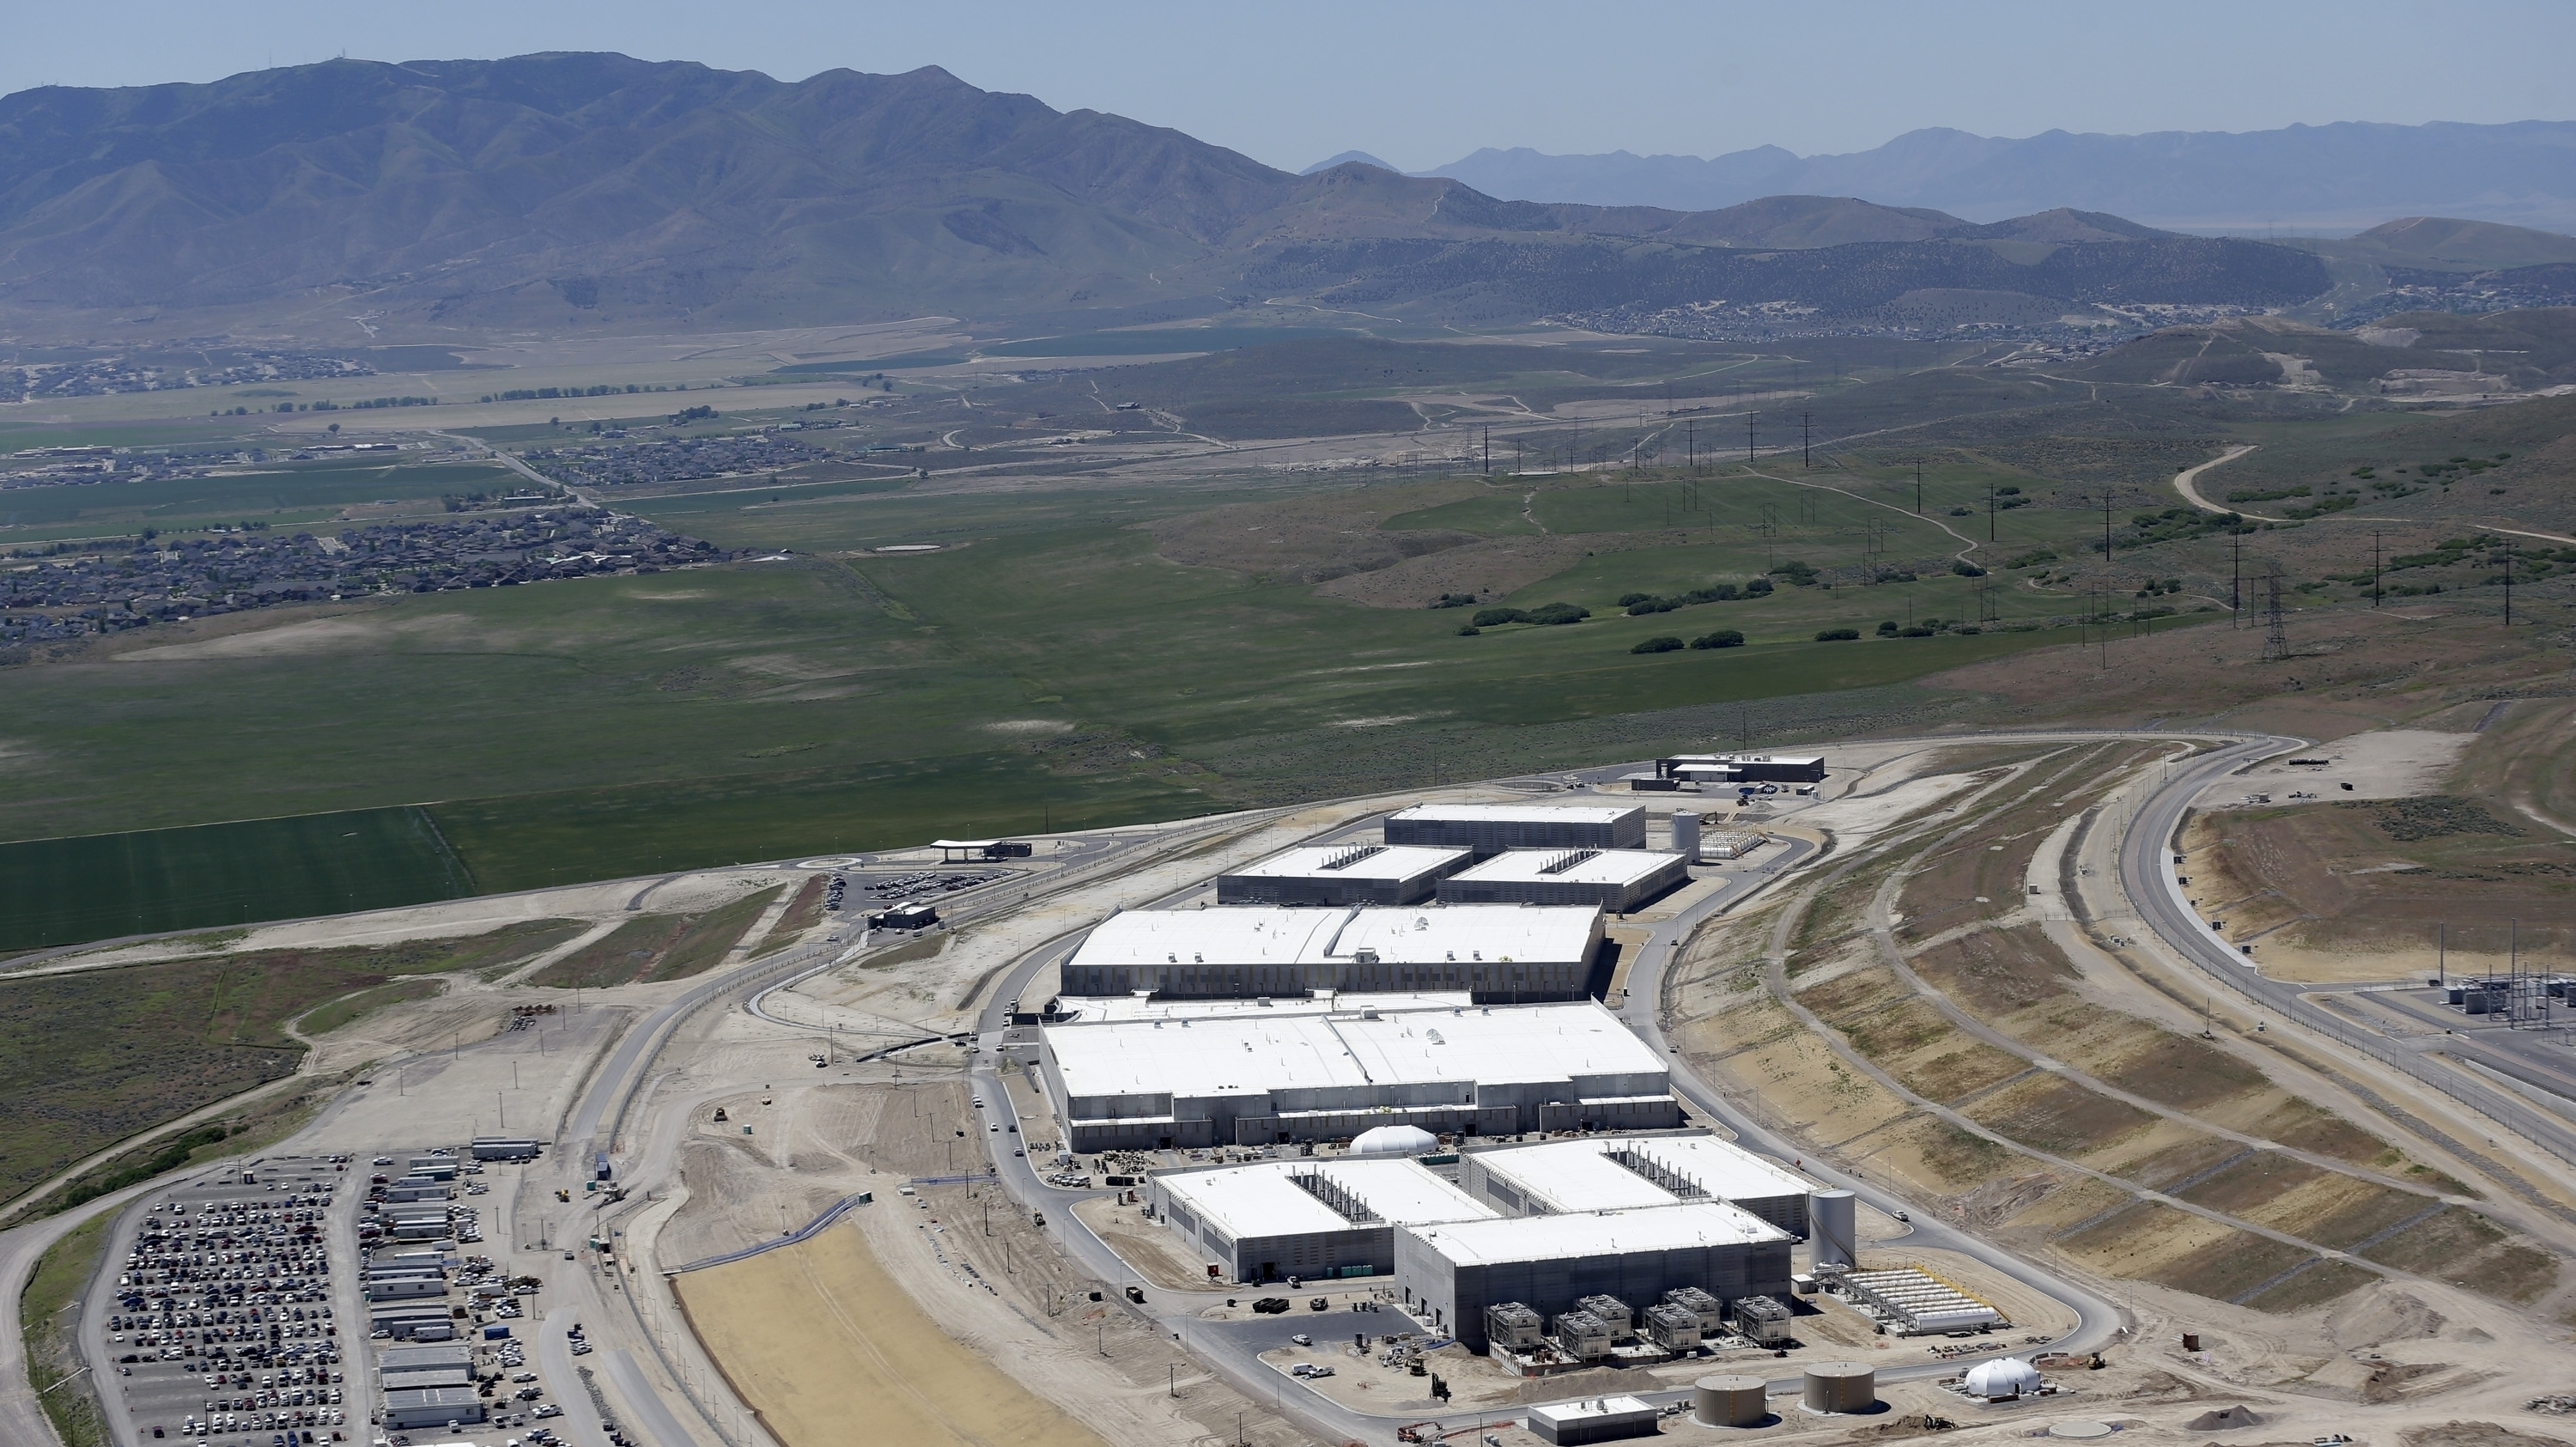 Booting Up: New NSA Data Farm Takes Root In Utah